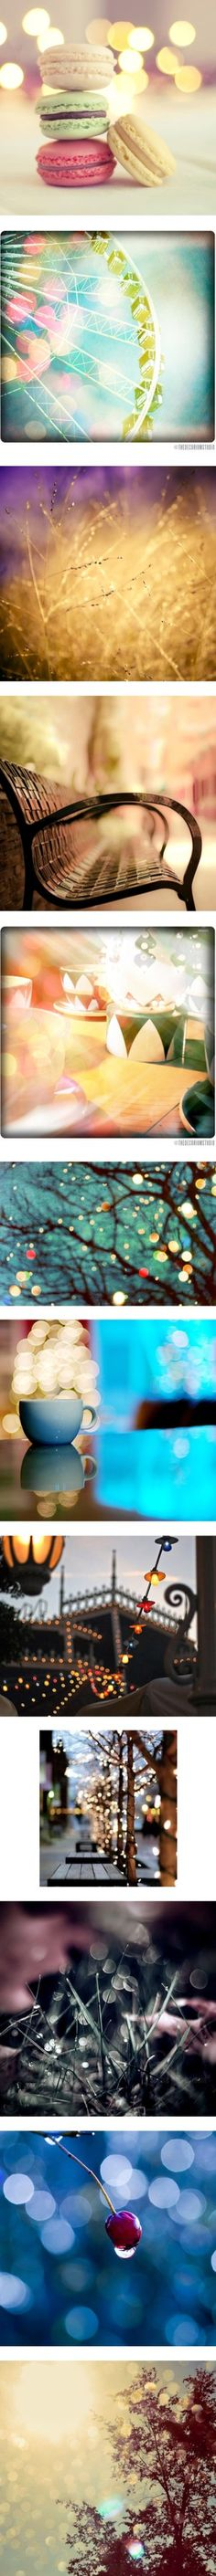 """Bokeh Photography"" by castlefanatic ❤ liked on Polyvore"